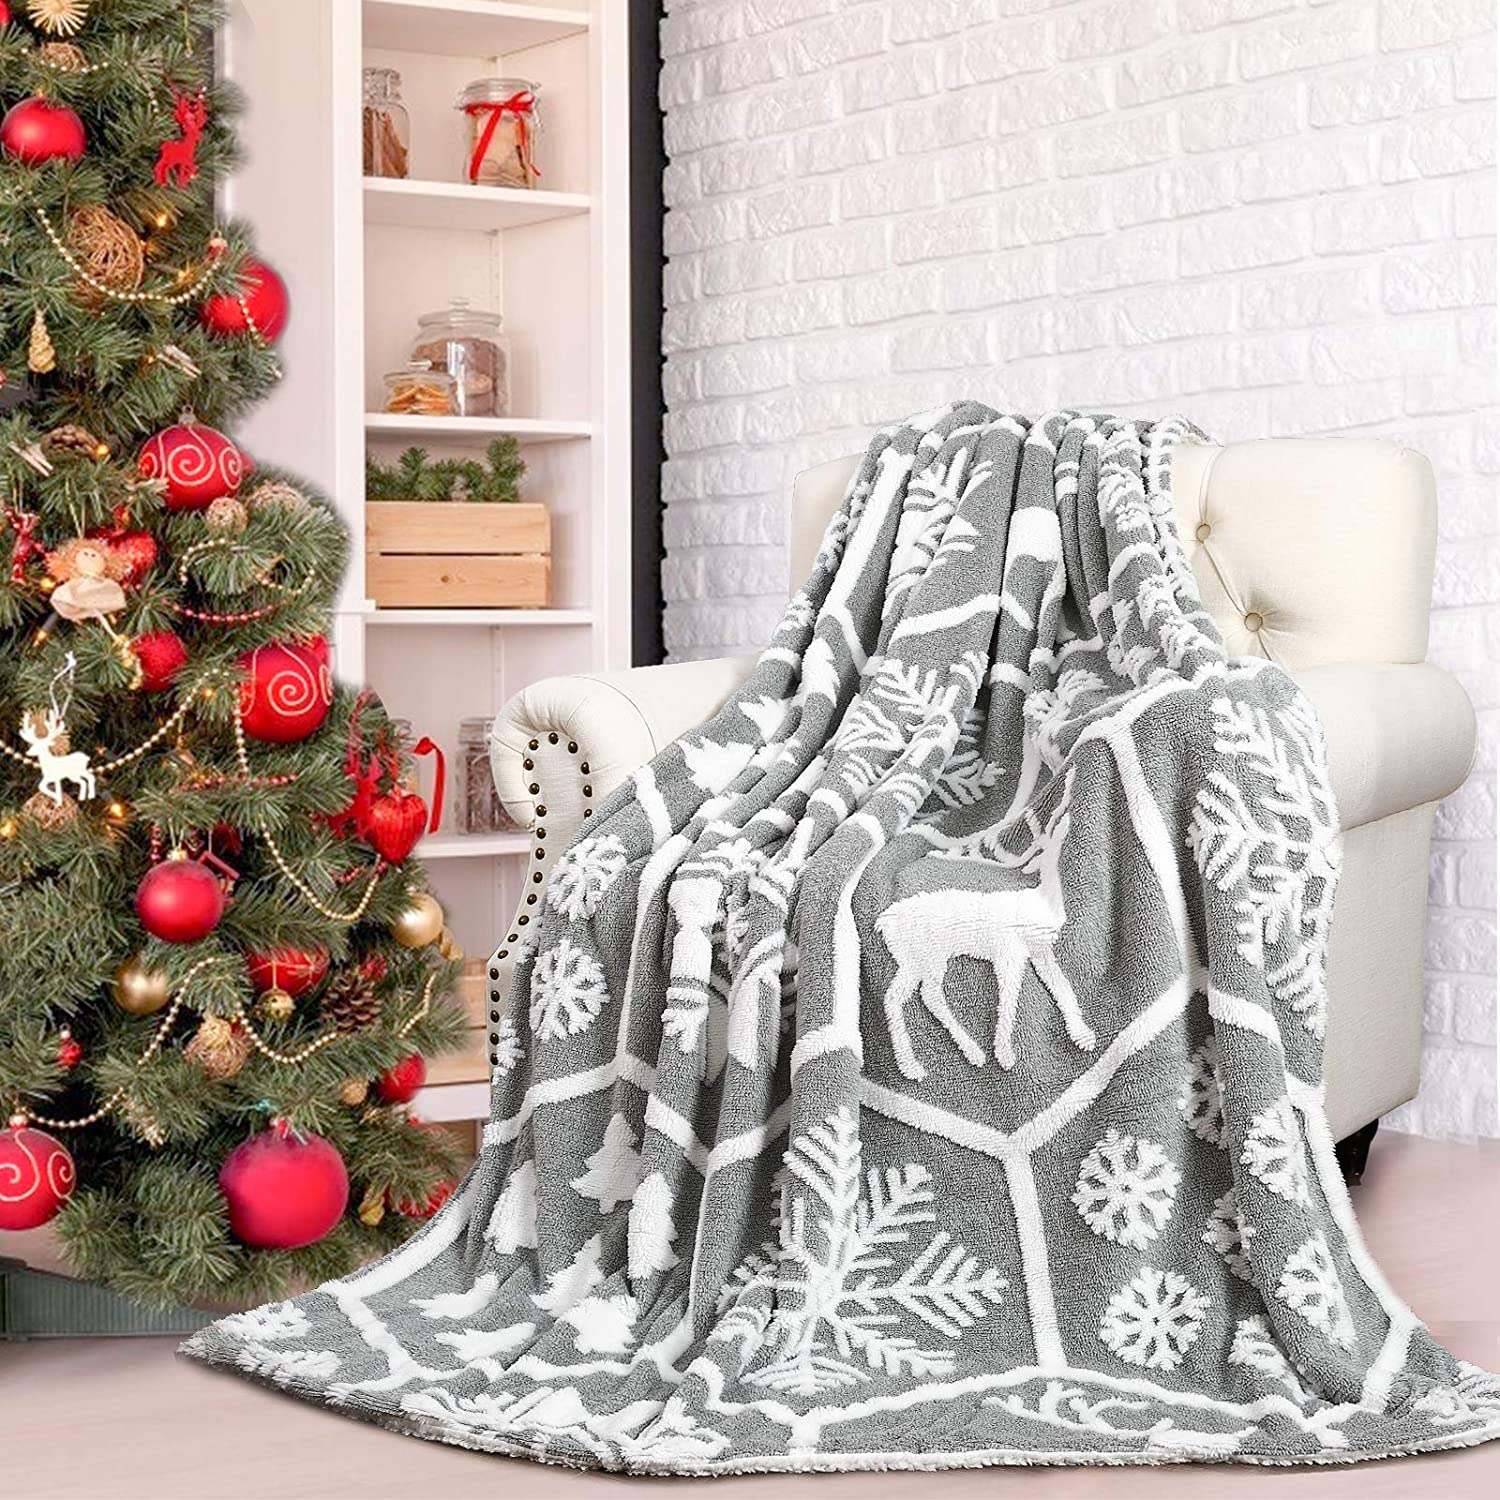 Comeet Soft Faux Sherpa Fleece Christmas Blanket for Kids Holiday, Warm Plush Throw Blanket for College Dorm Bedroom Sofa Couch Bed by Fireplace Gifts for Girls Boys Carpet Home Decor 50x60 in Grey